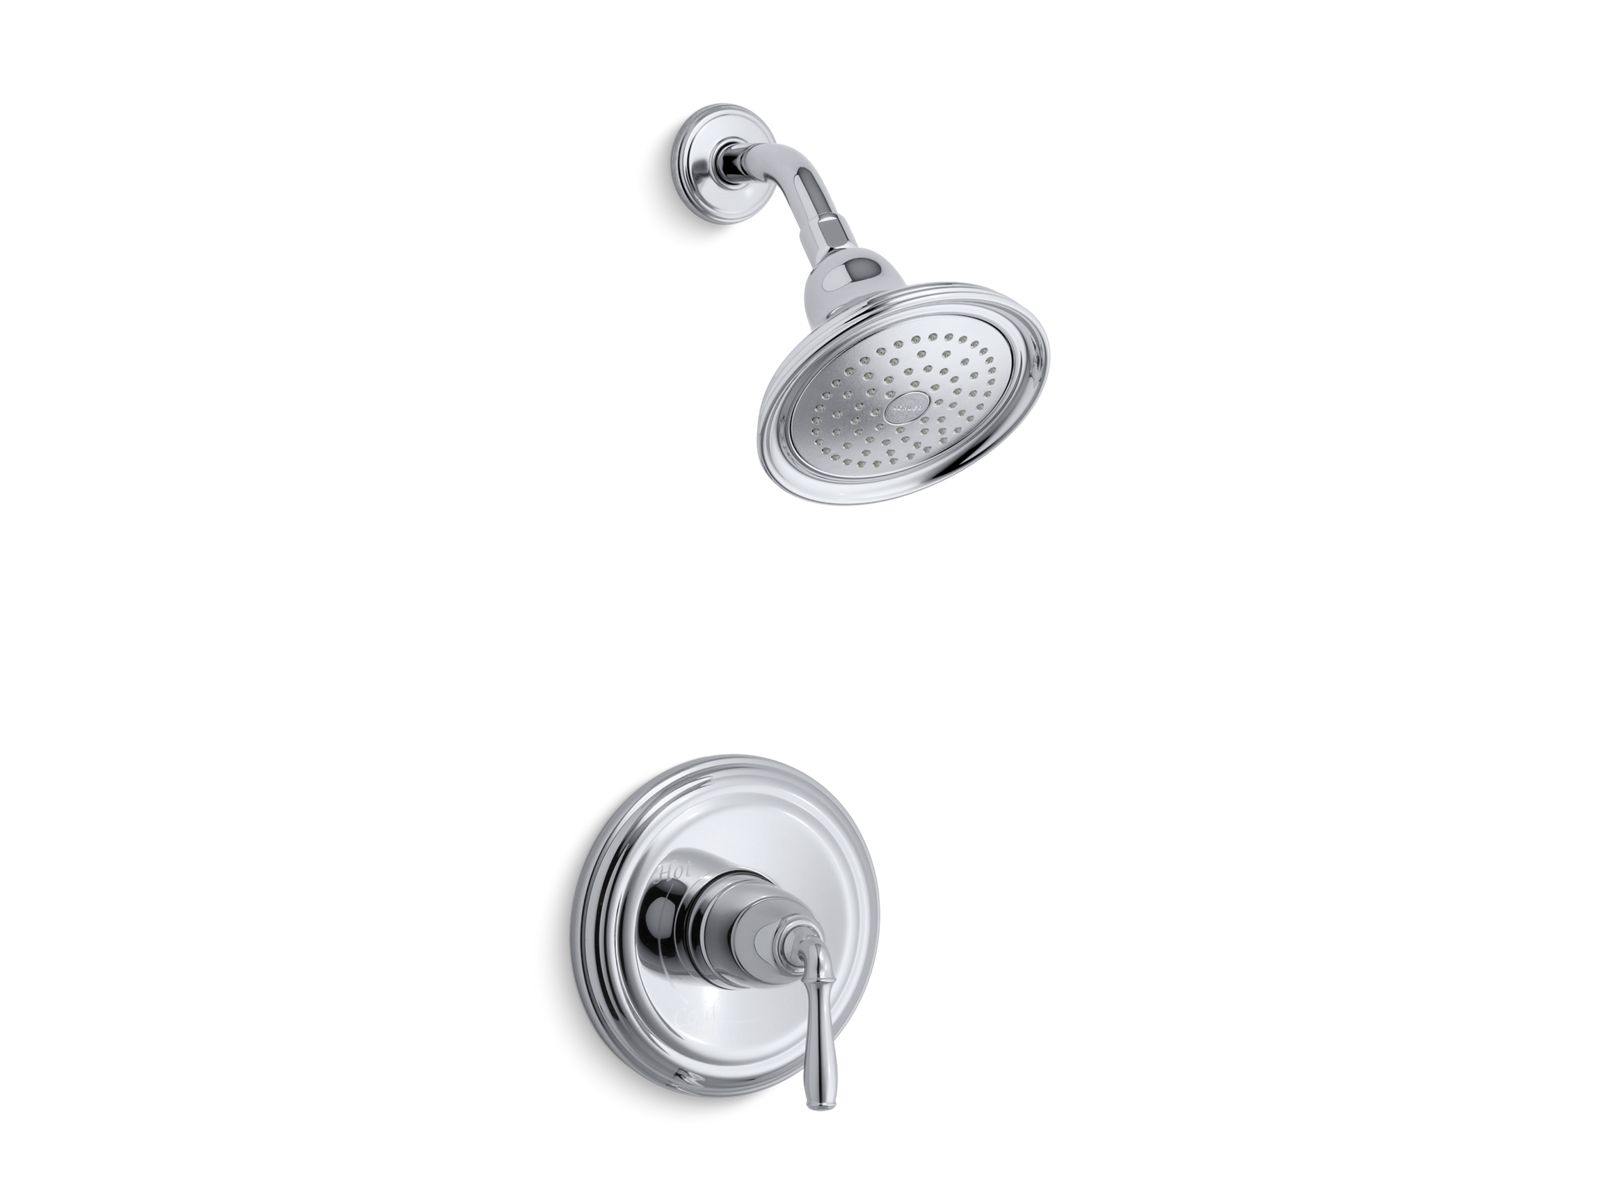 K TS396 4E | Devonshire® Rite Temp® Shower Valve Trim With Lever Handle And  2.0 Gpm Showerhead | KOHLER